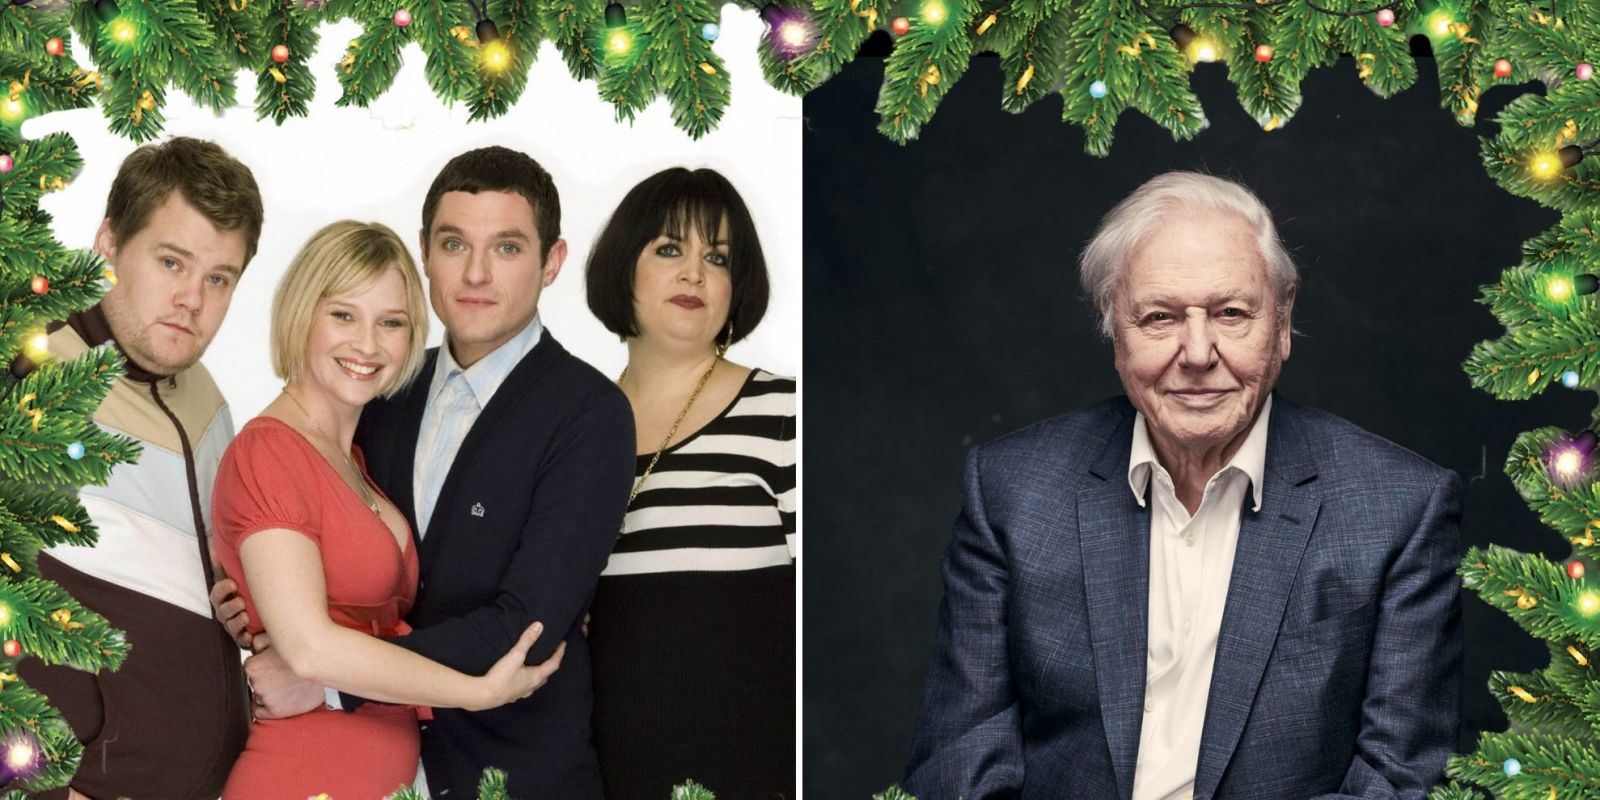 BBC iPlayer will offer over 100 'box sets' to stream this Christmas, from Gavin & Stacey to Planet Earth